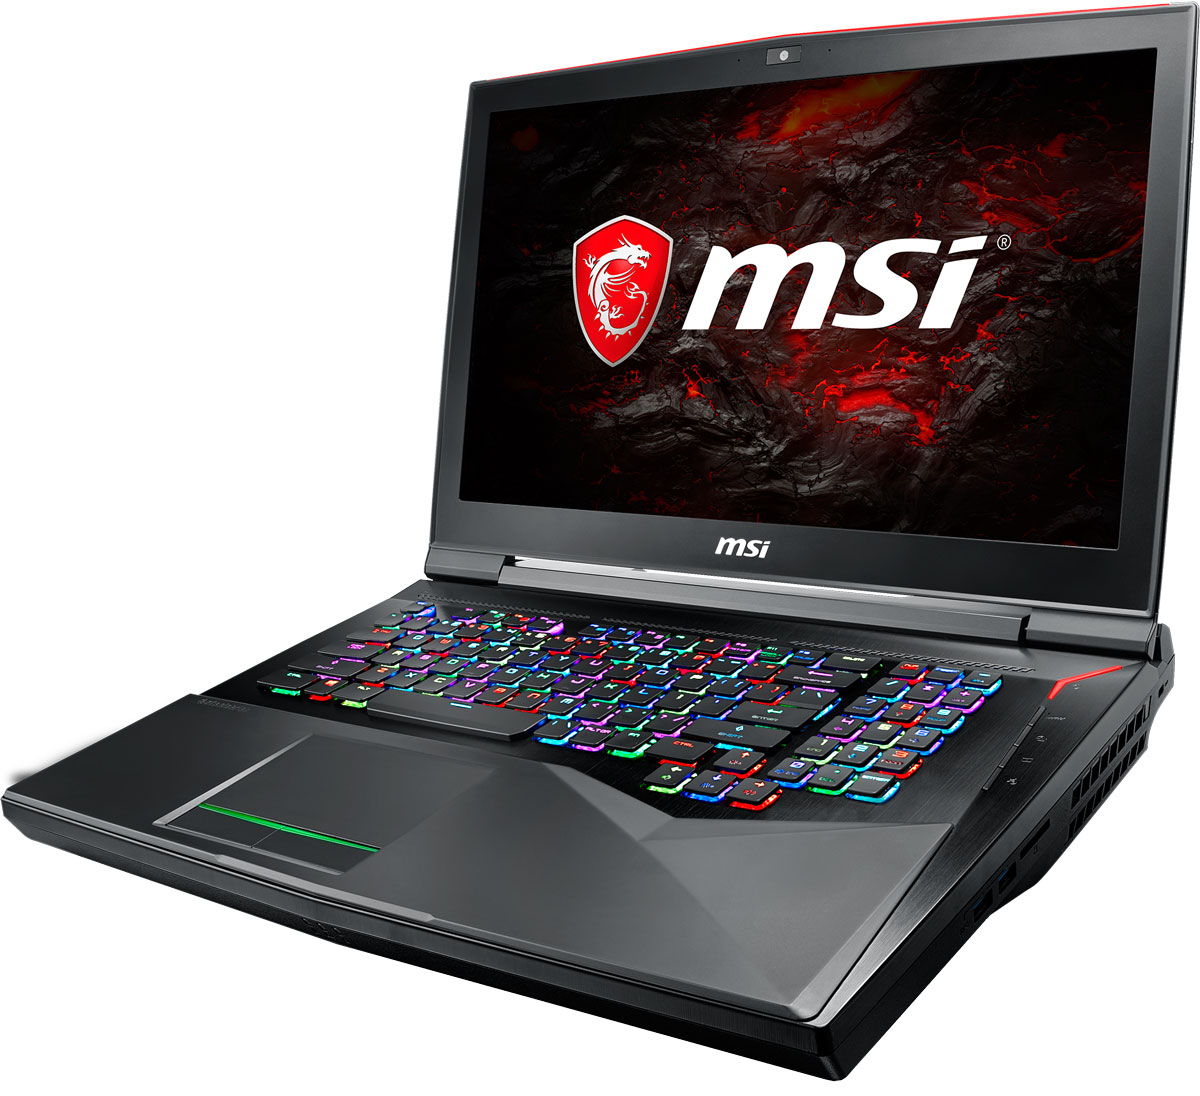 MSI GT75 8RG, Black (GT75 8RG-052RU) msi original zh77a g43 motherboard ddr3 lga 1155 for i3 i5 i7 cpu 32gb usb3 0 sata3 h77 motherboard